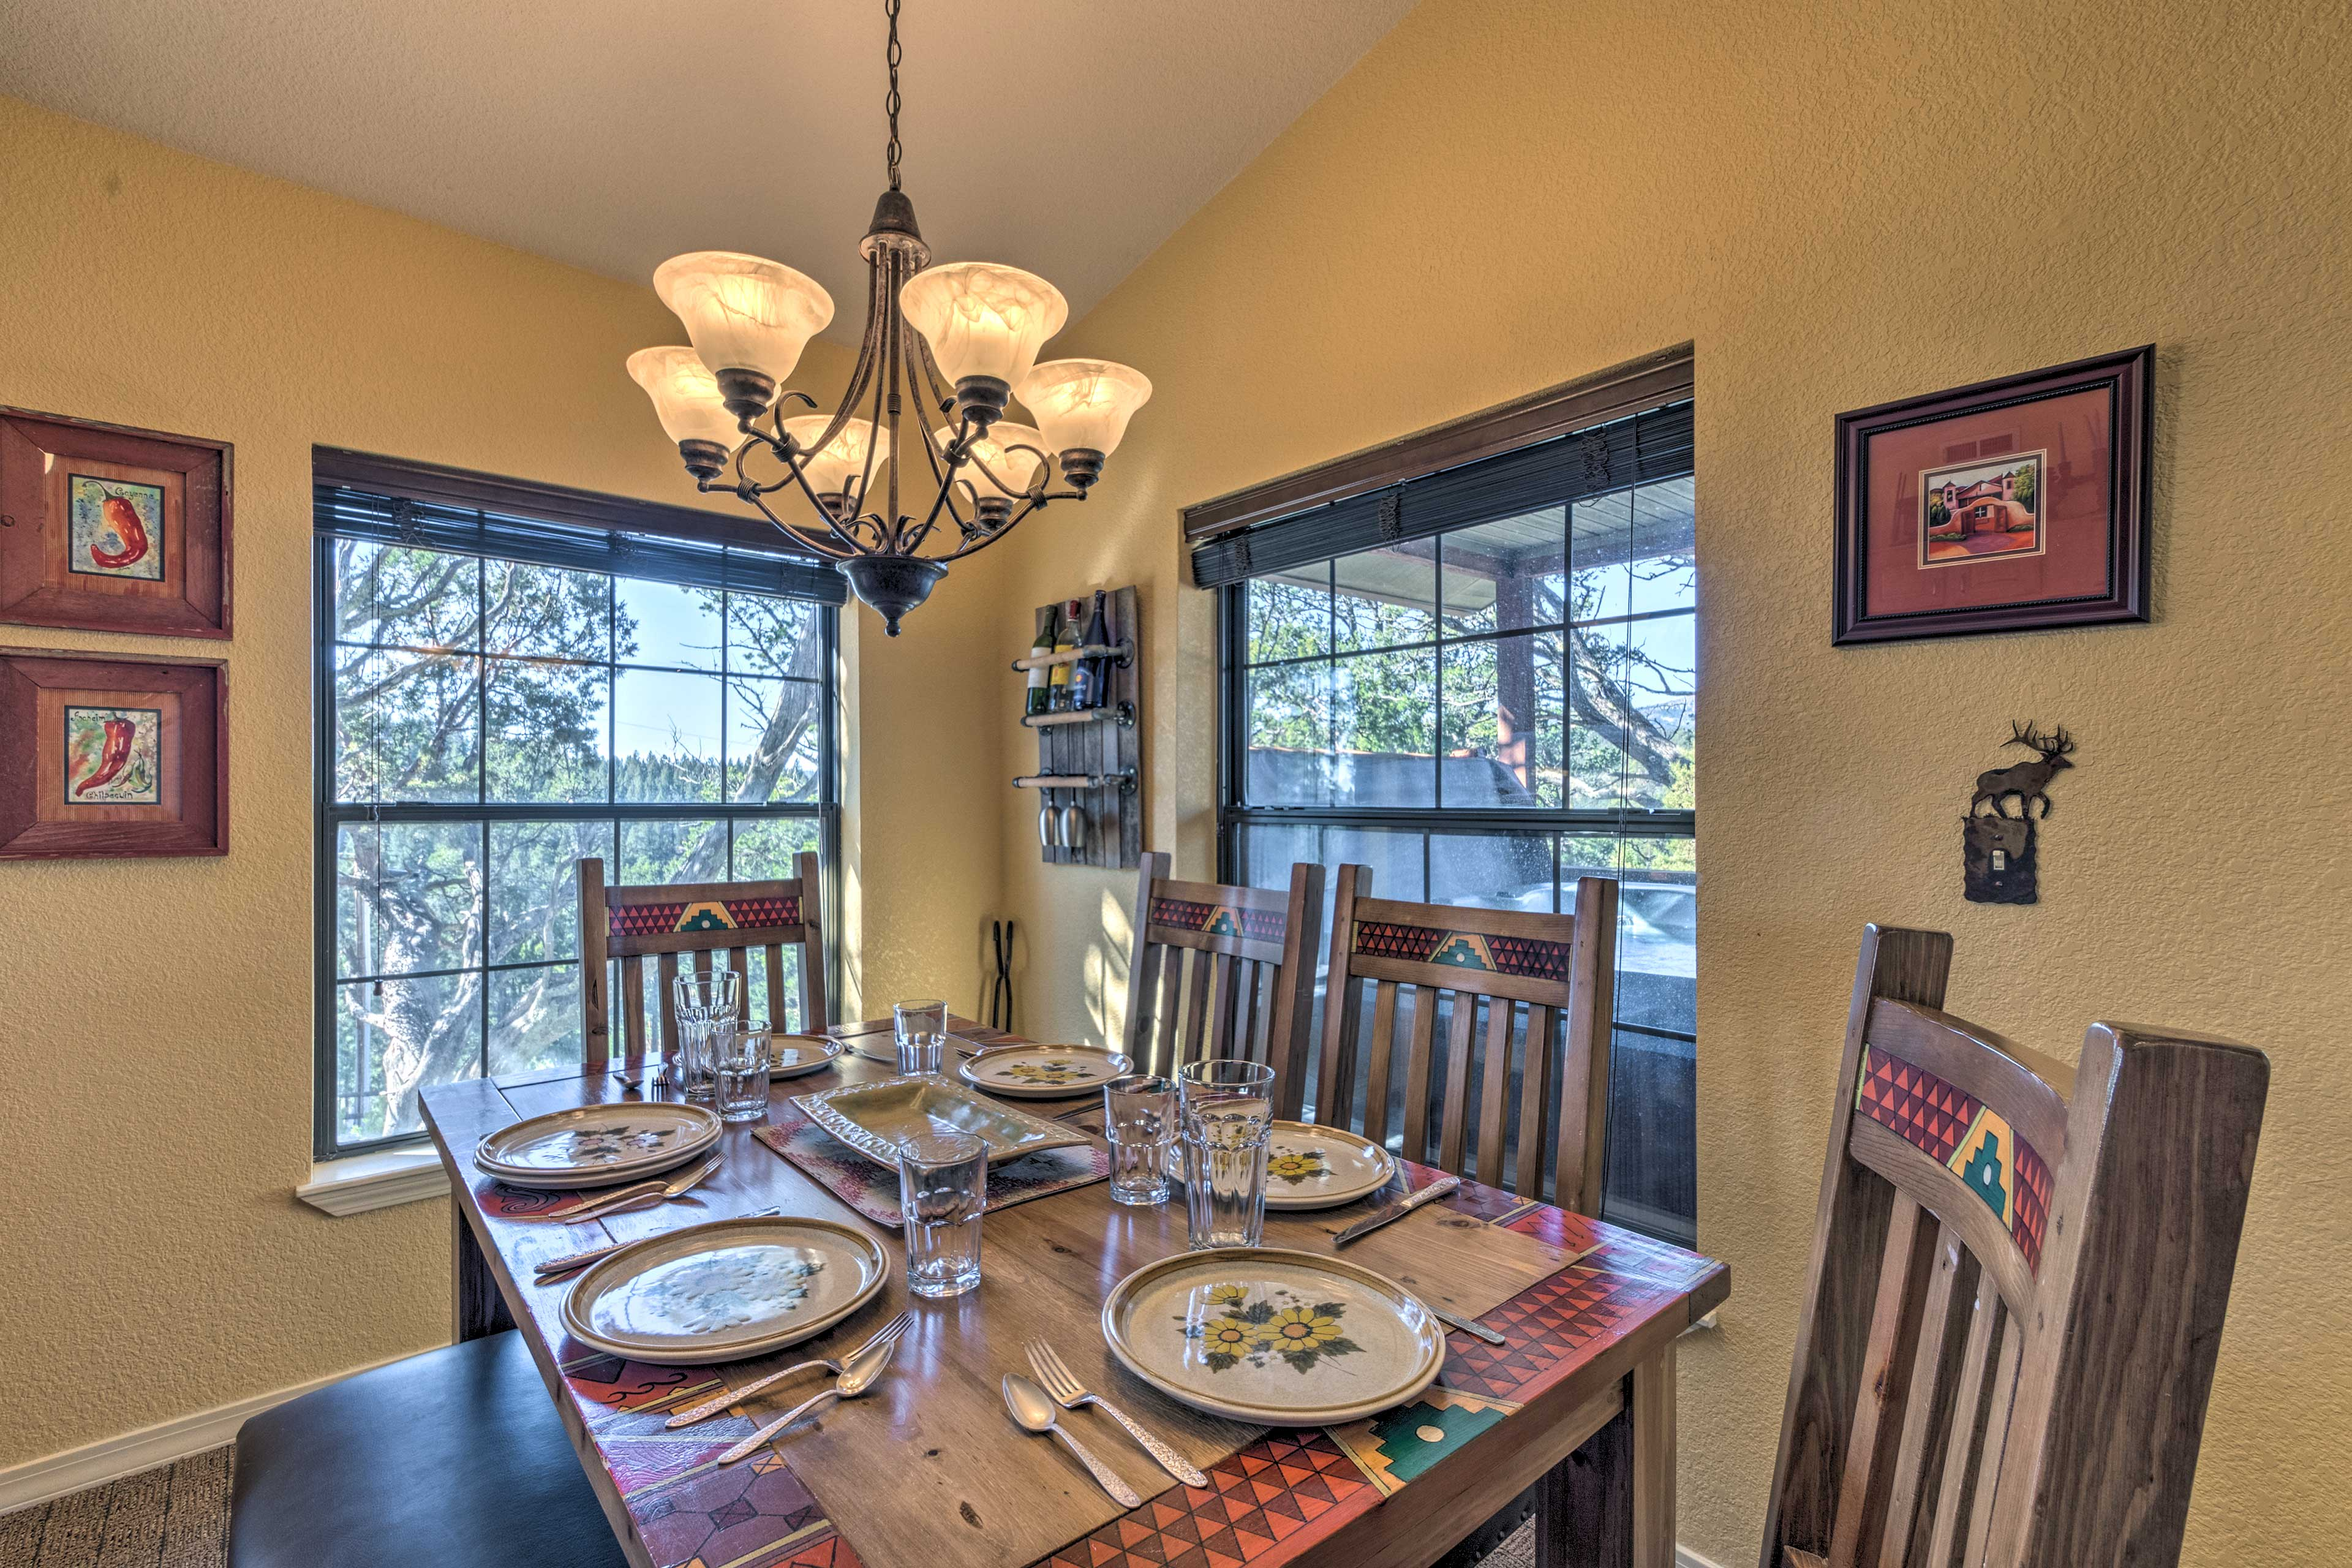 Gather the group for a family dinner around the elegant dining table.